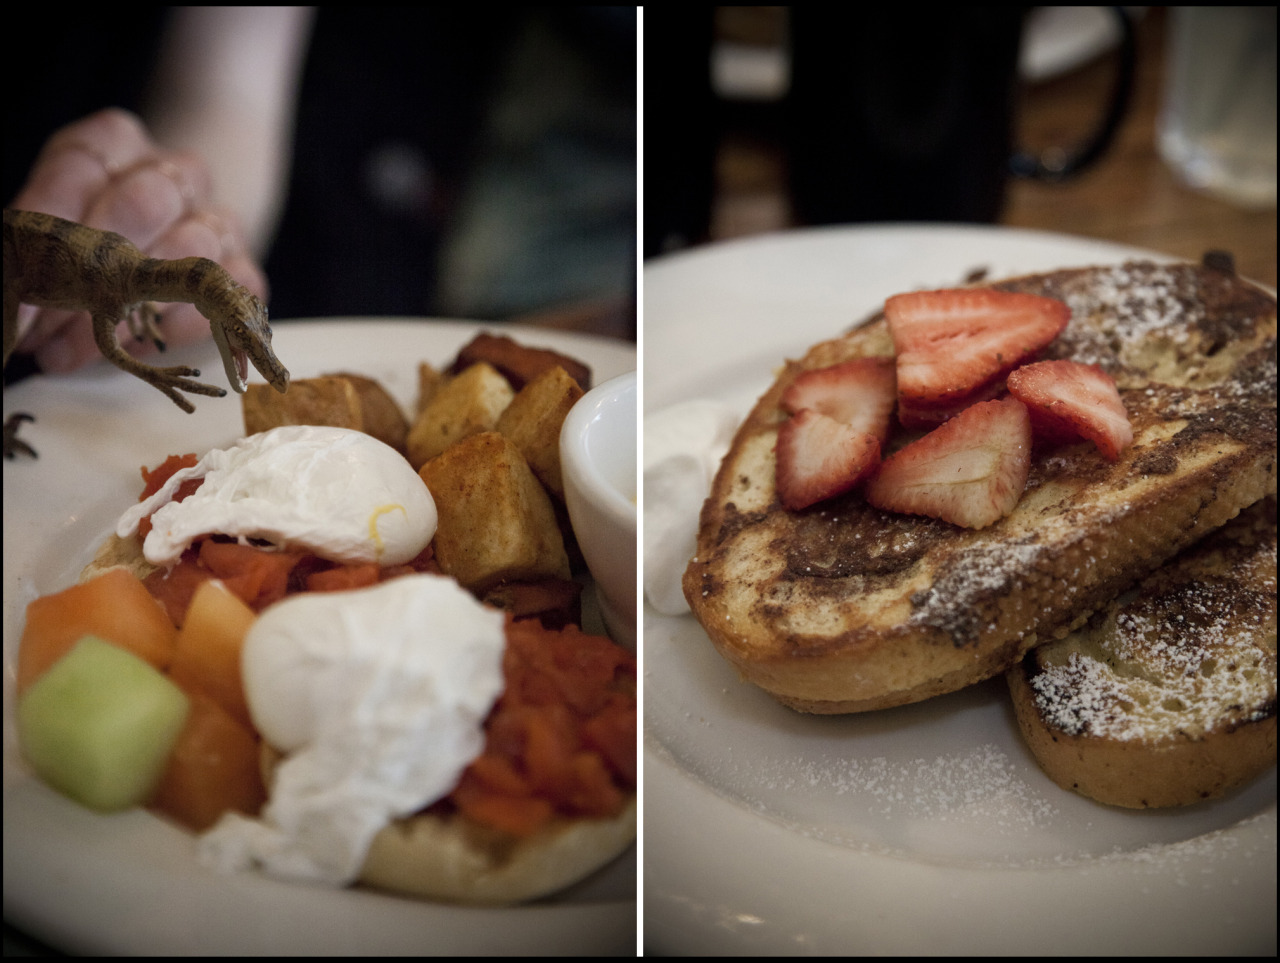 Here's my brunch blog…we went to The Whip and I had that french toast, which was AMAZING.   chorizoyourowneggventure :      The Whip  April 07, 2013 Smoked Salmon Eggs Benny; Stuffed French Toast  (we went to see Jurassic Park 3D after brunch)